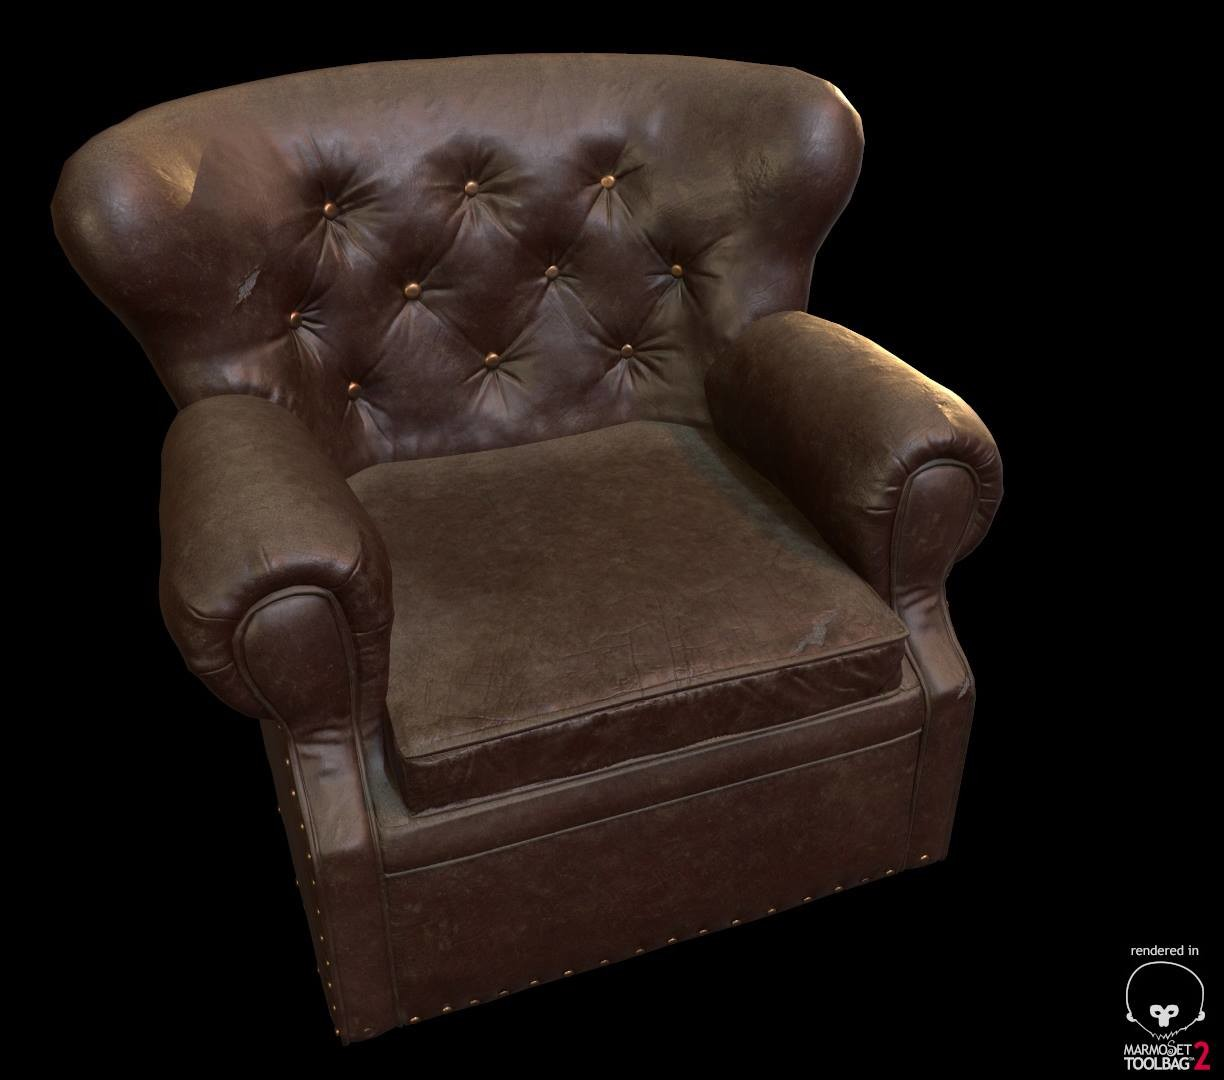 Astounding Artstation Fake Leather Chair Julian Moran Unemploymentrelief Wooden Chair Designs For Living Room Unemploymentrelieforg